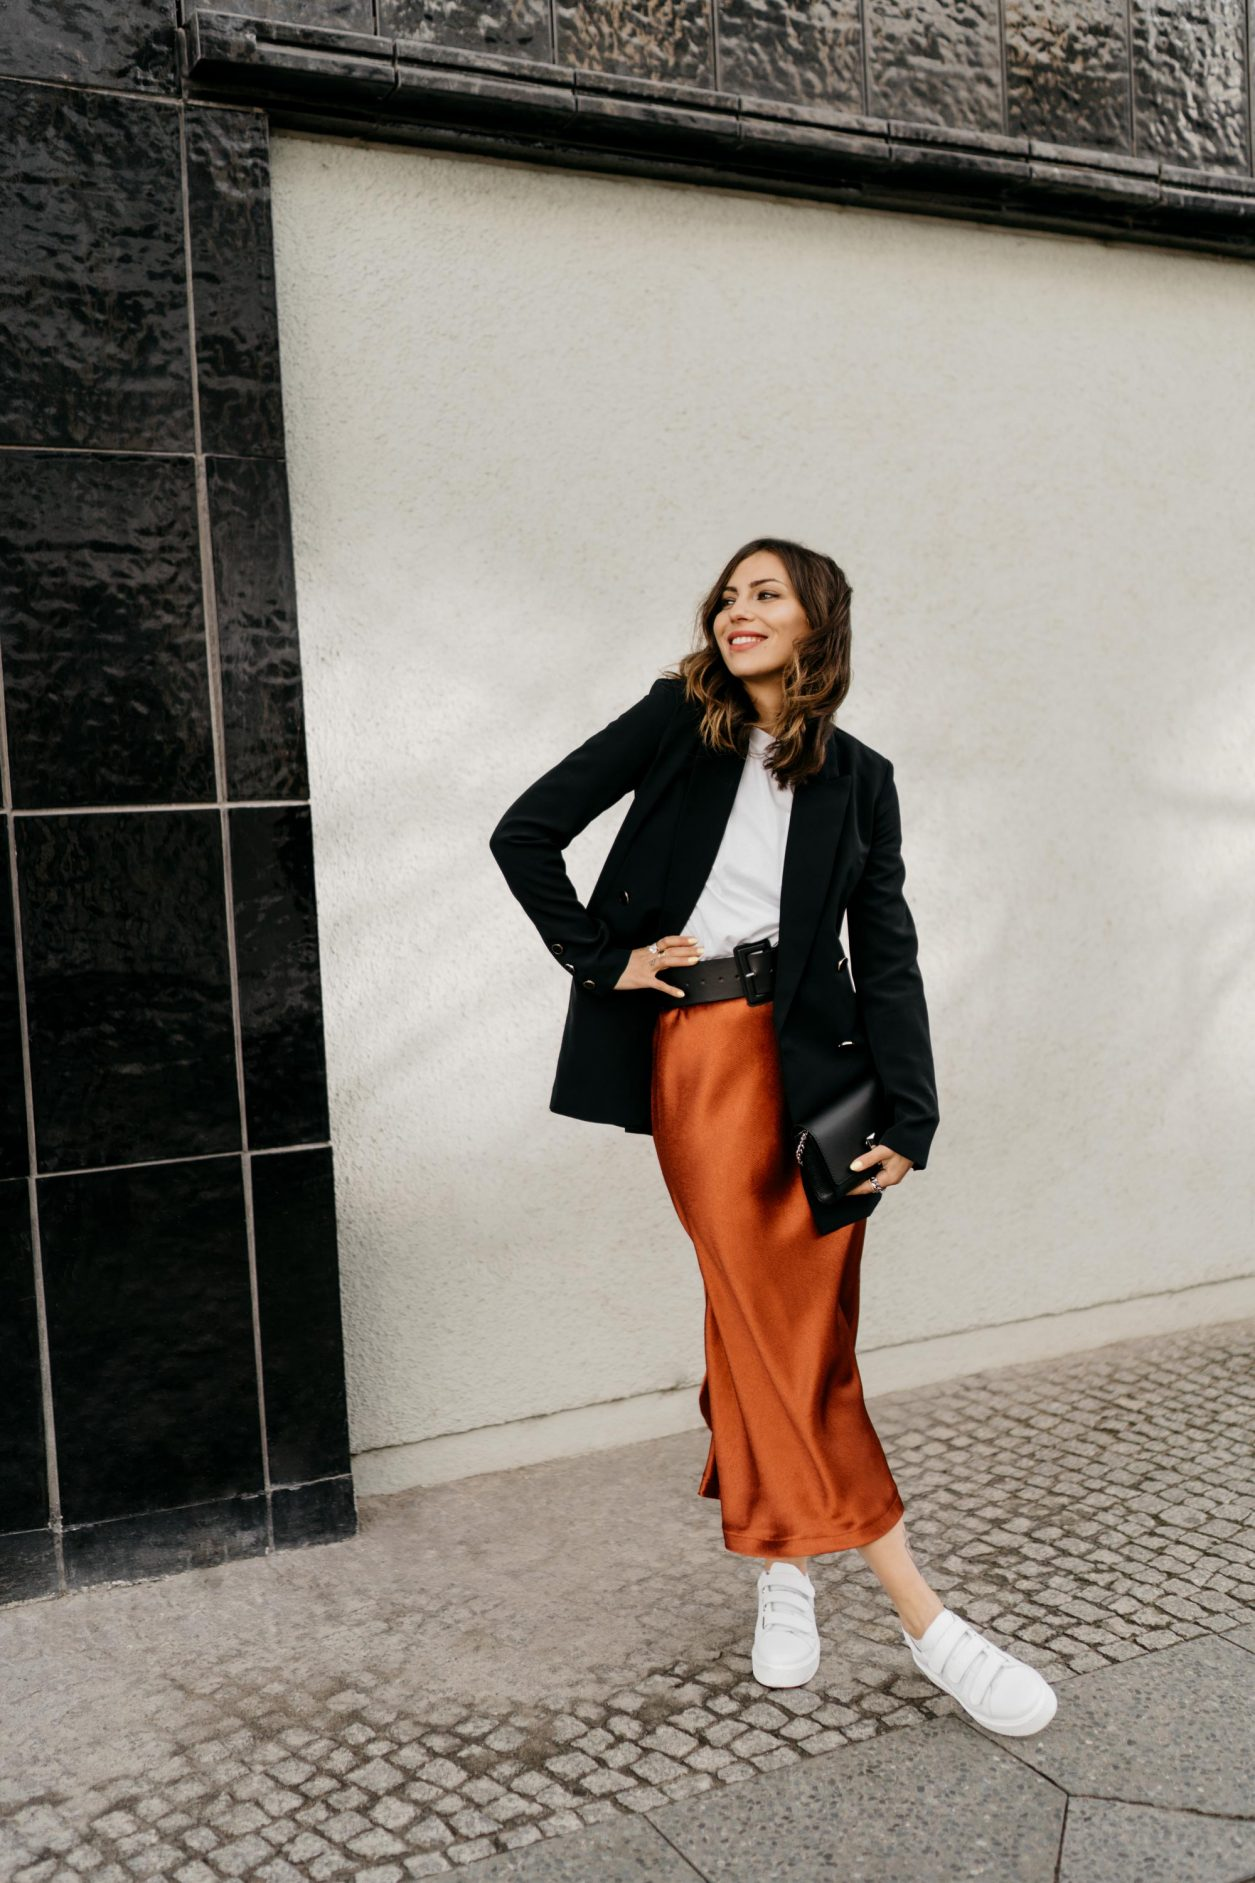 Spring Streetstyle Outfit by Masha Sedgwick   Fashion Blogger from Berlin, Germany   Wearing black Guess blazer, orange red satin Closed midi skirt, black leather belt by Gina Tricot, Calvin Klein Jeans basic white shirt with logo on the pocket, black belt leather BOSS bag, white sneaker by Zign   how to style white sneaker in a business outfit